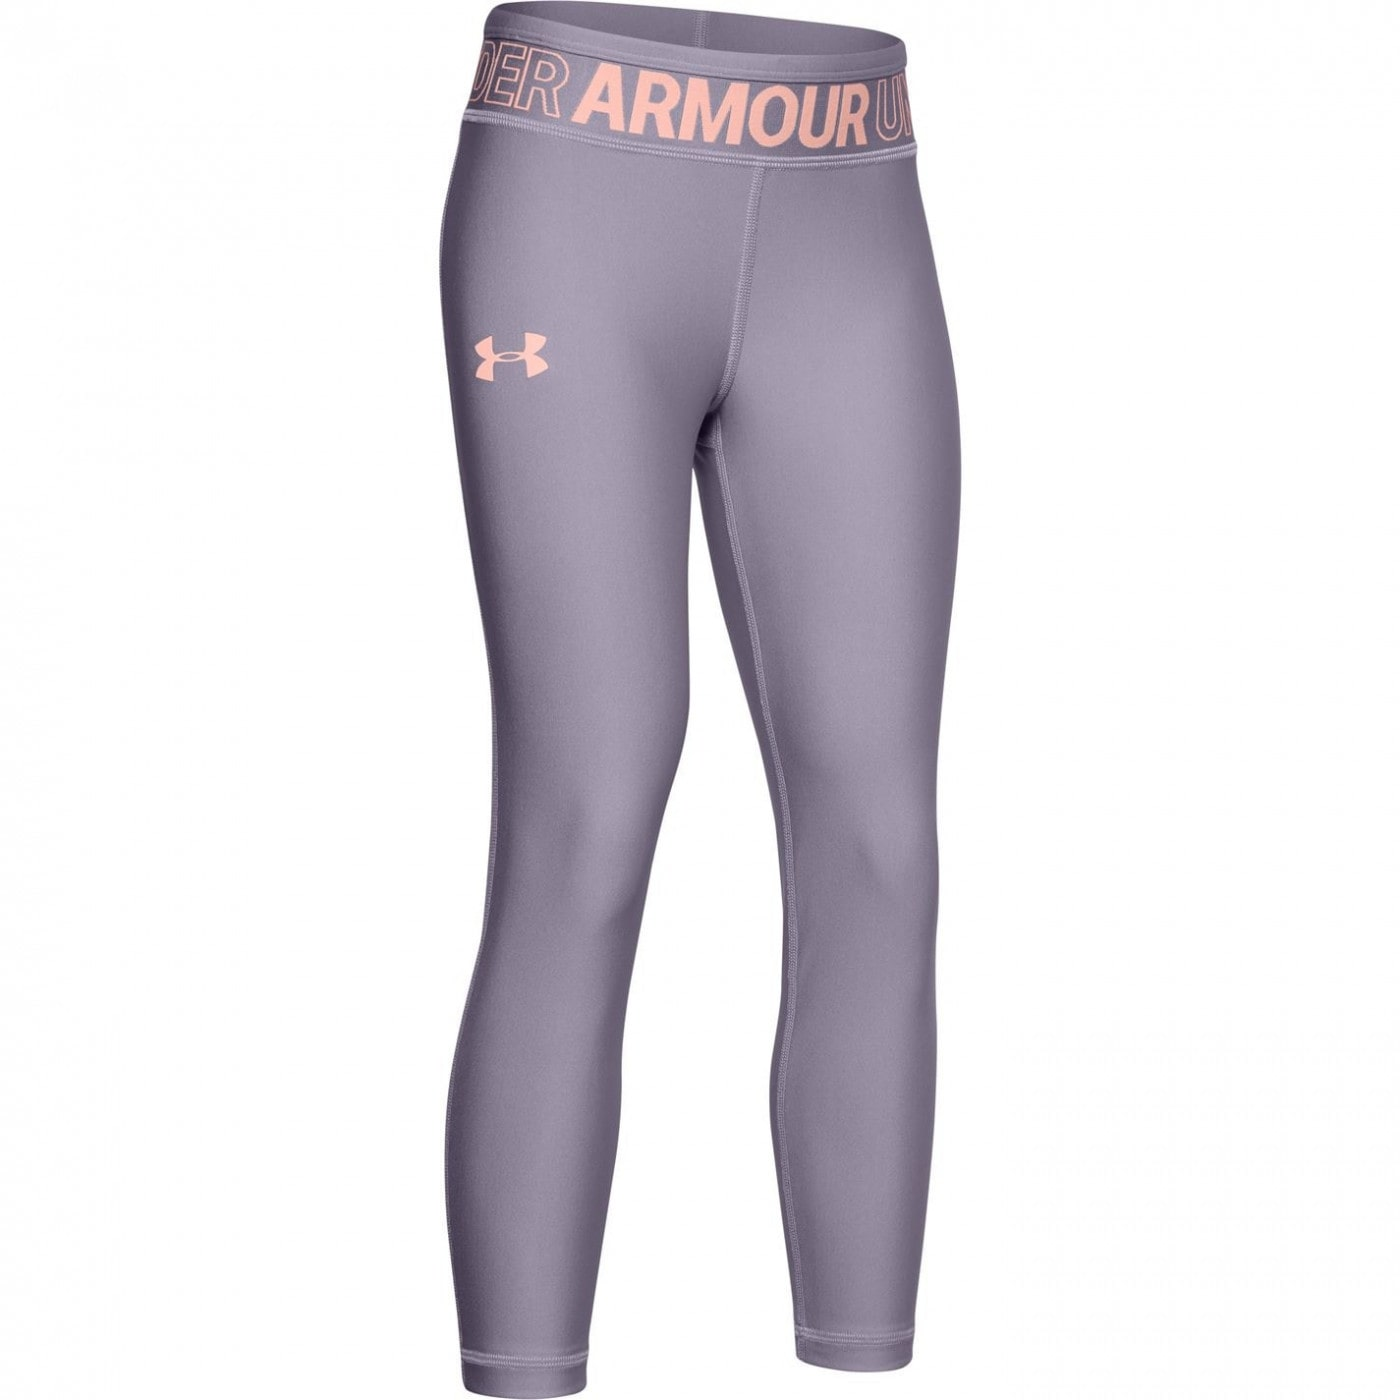 Girls' leggins Under Armour Ankle Crop